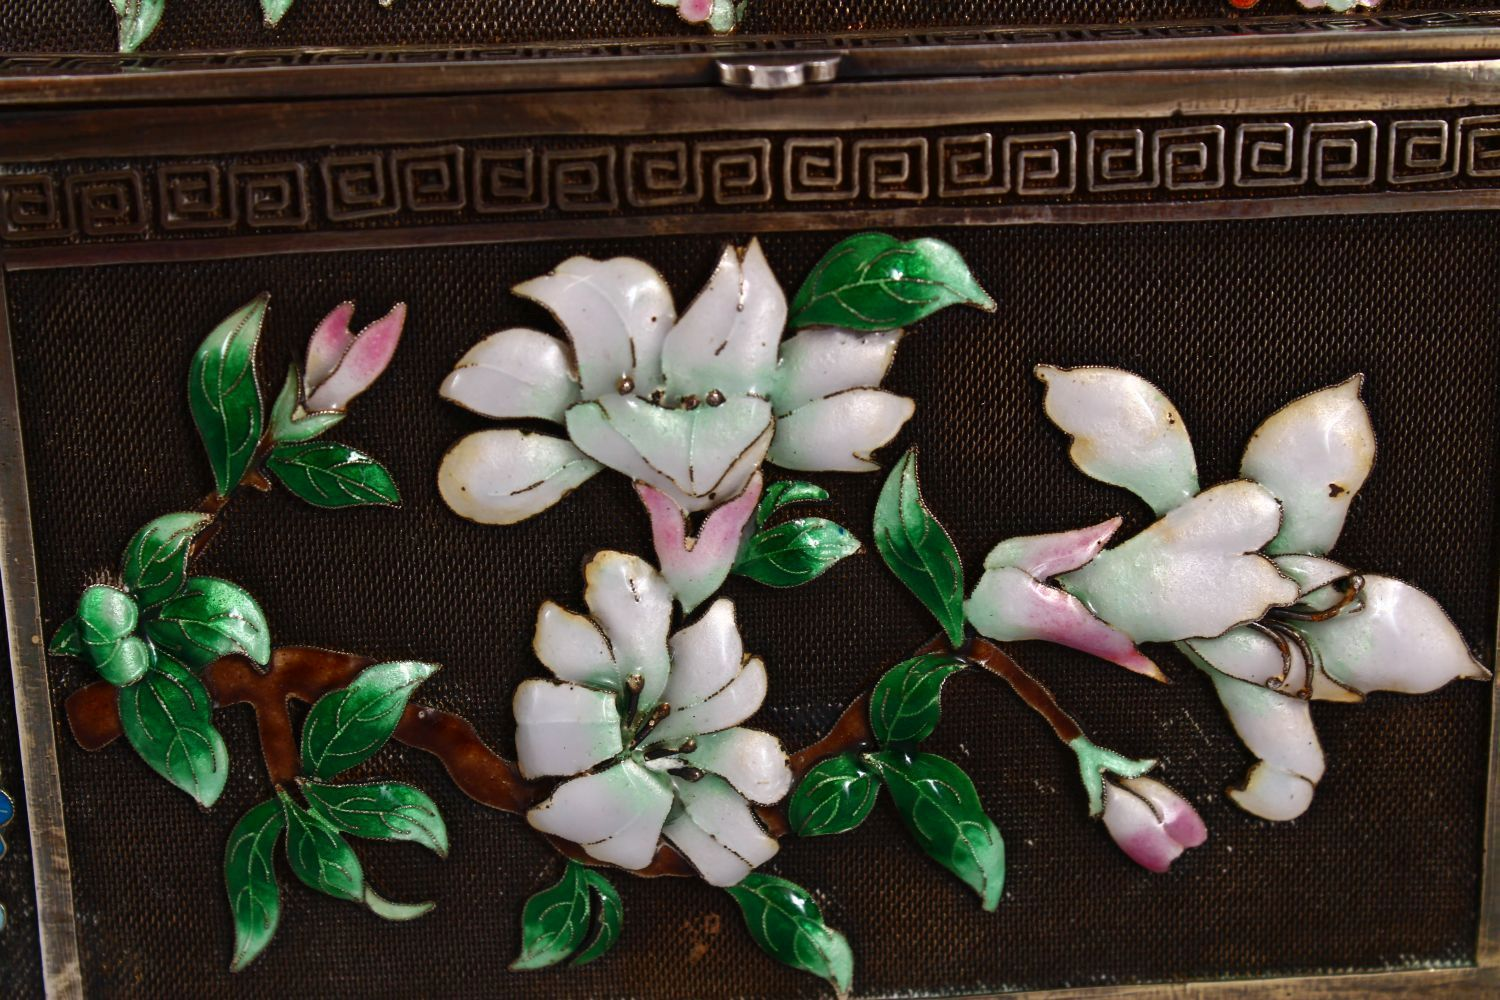 A CHINESE SILVER & ENAMEL LIDDED BOX, with enamel decoration of native flora, base marked silver, - Image 6 of 10